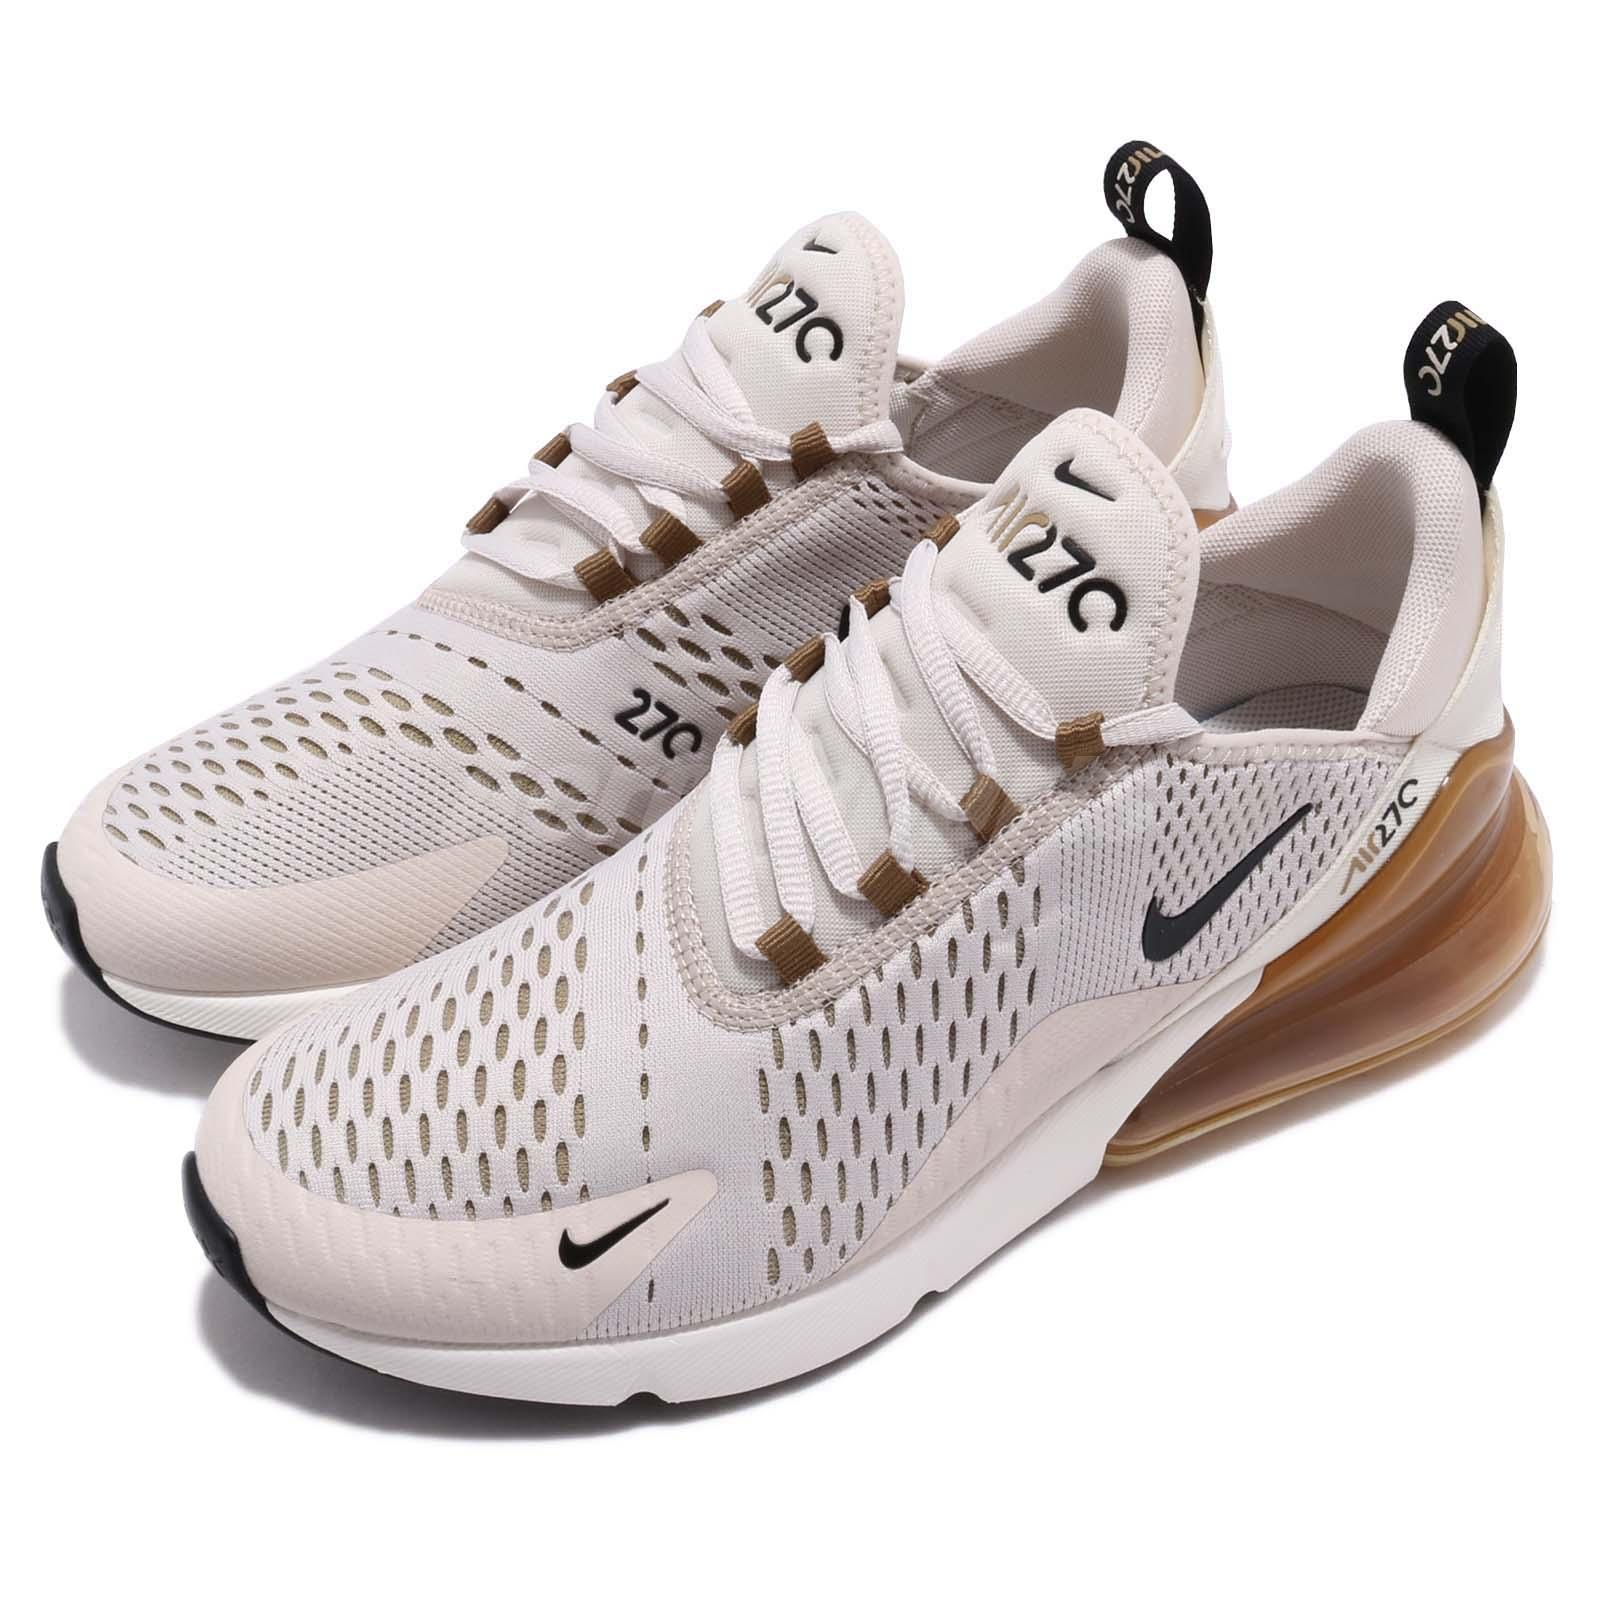 nike shoes new model, Mens Nike Free Run Gray Brown White